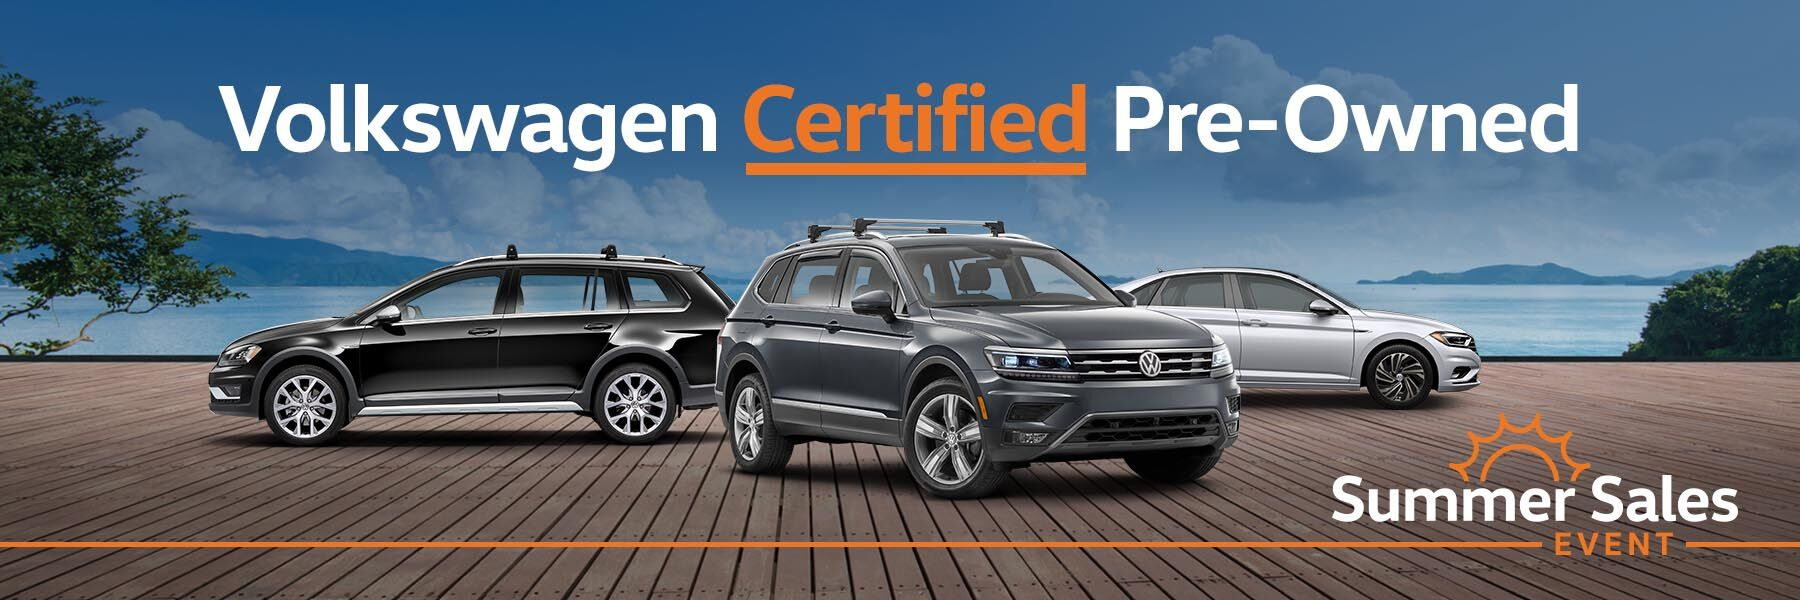 Volkswagen Certified Pre-Owned in Henderson, NV